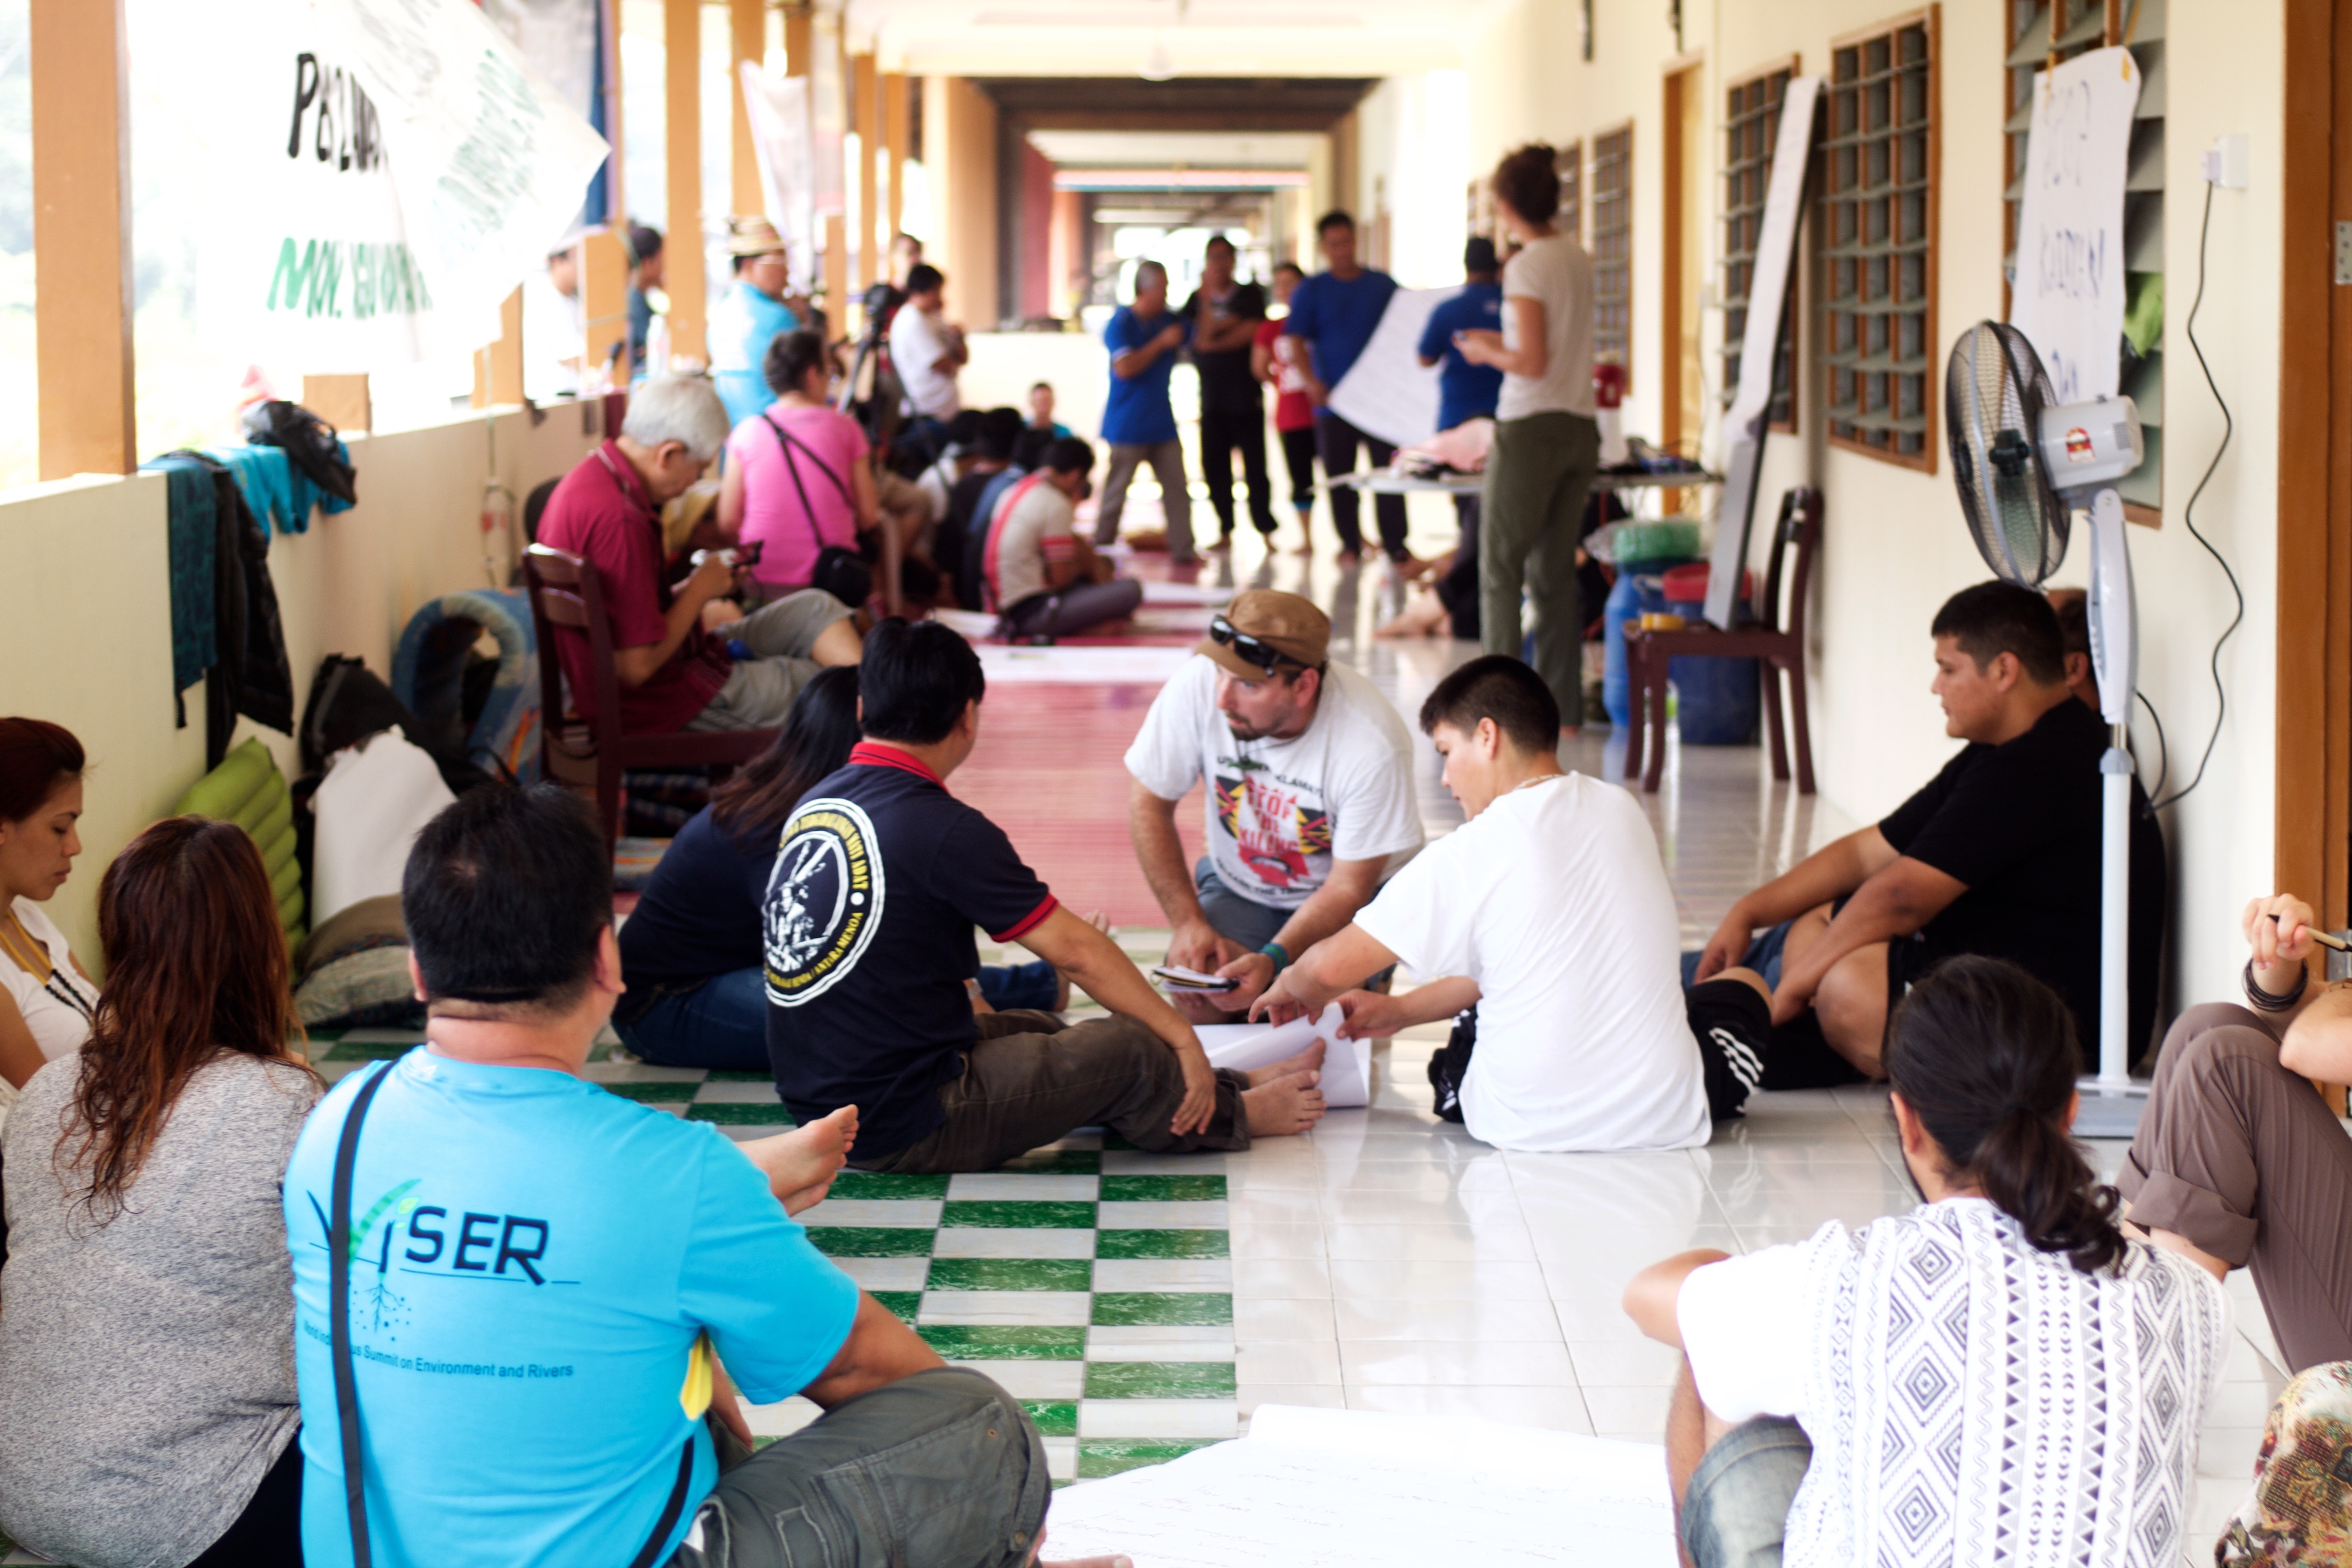 Participants sharing their experiences through workshops at the village of Tanjung Tepalit / Photo Credit: The Borneo Project